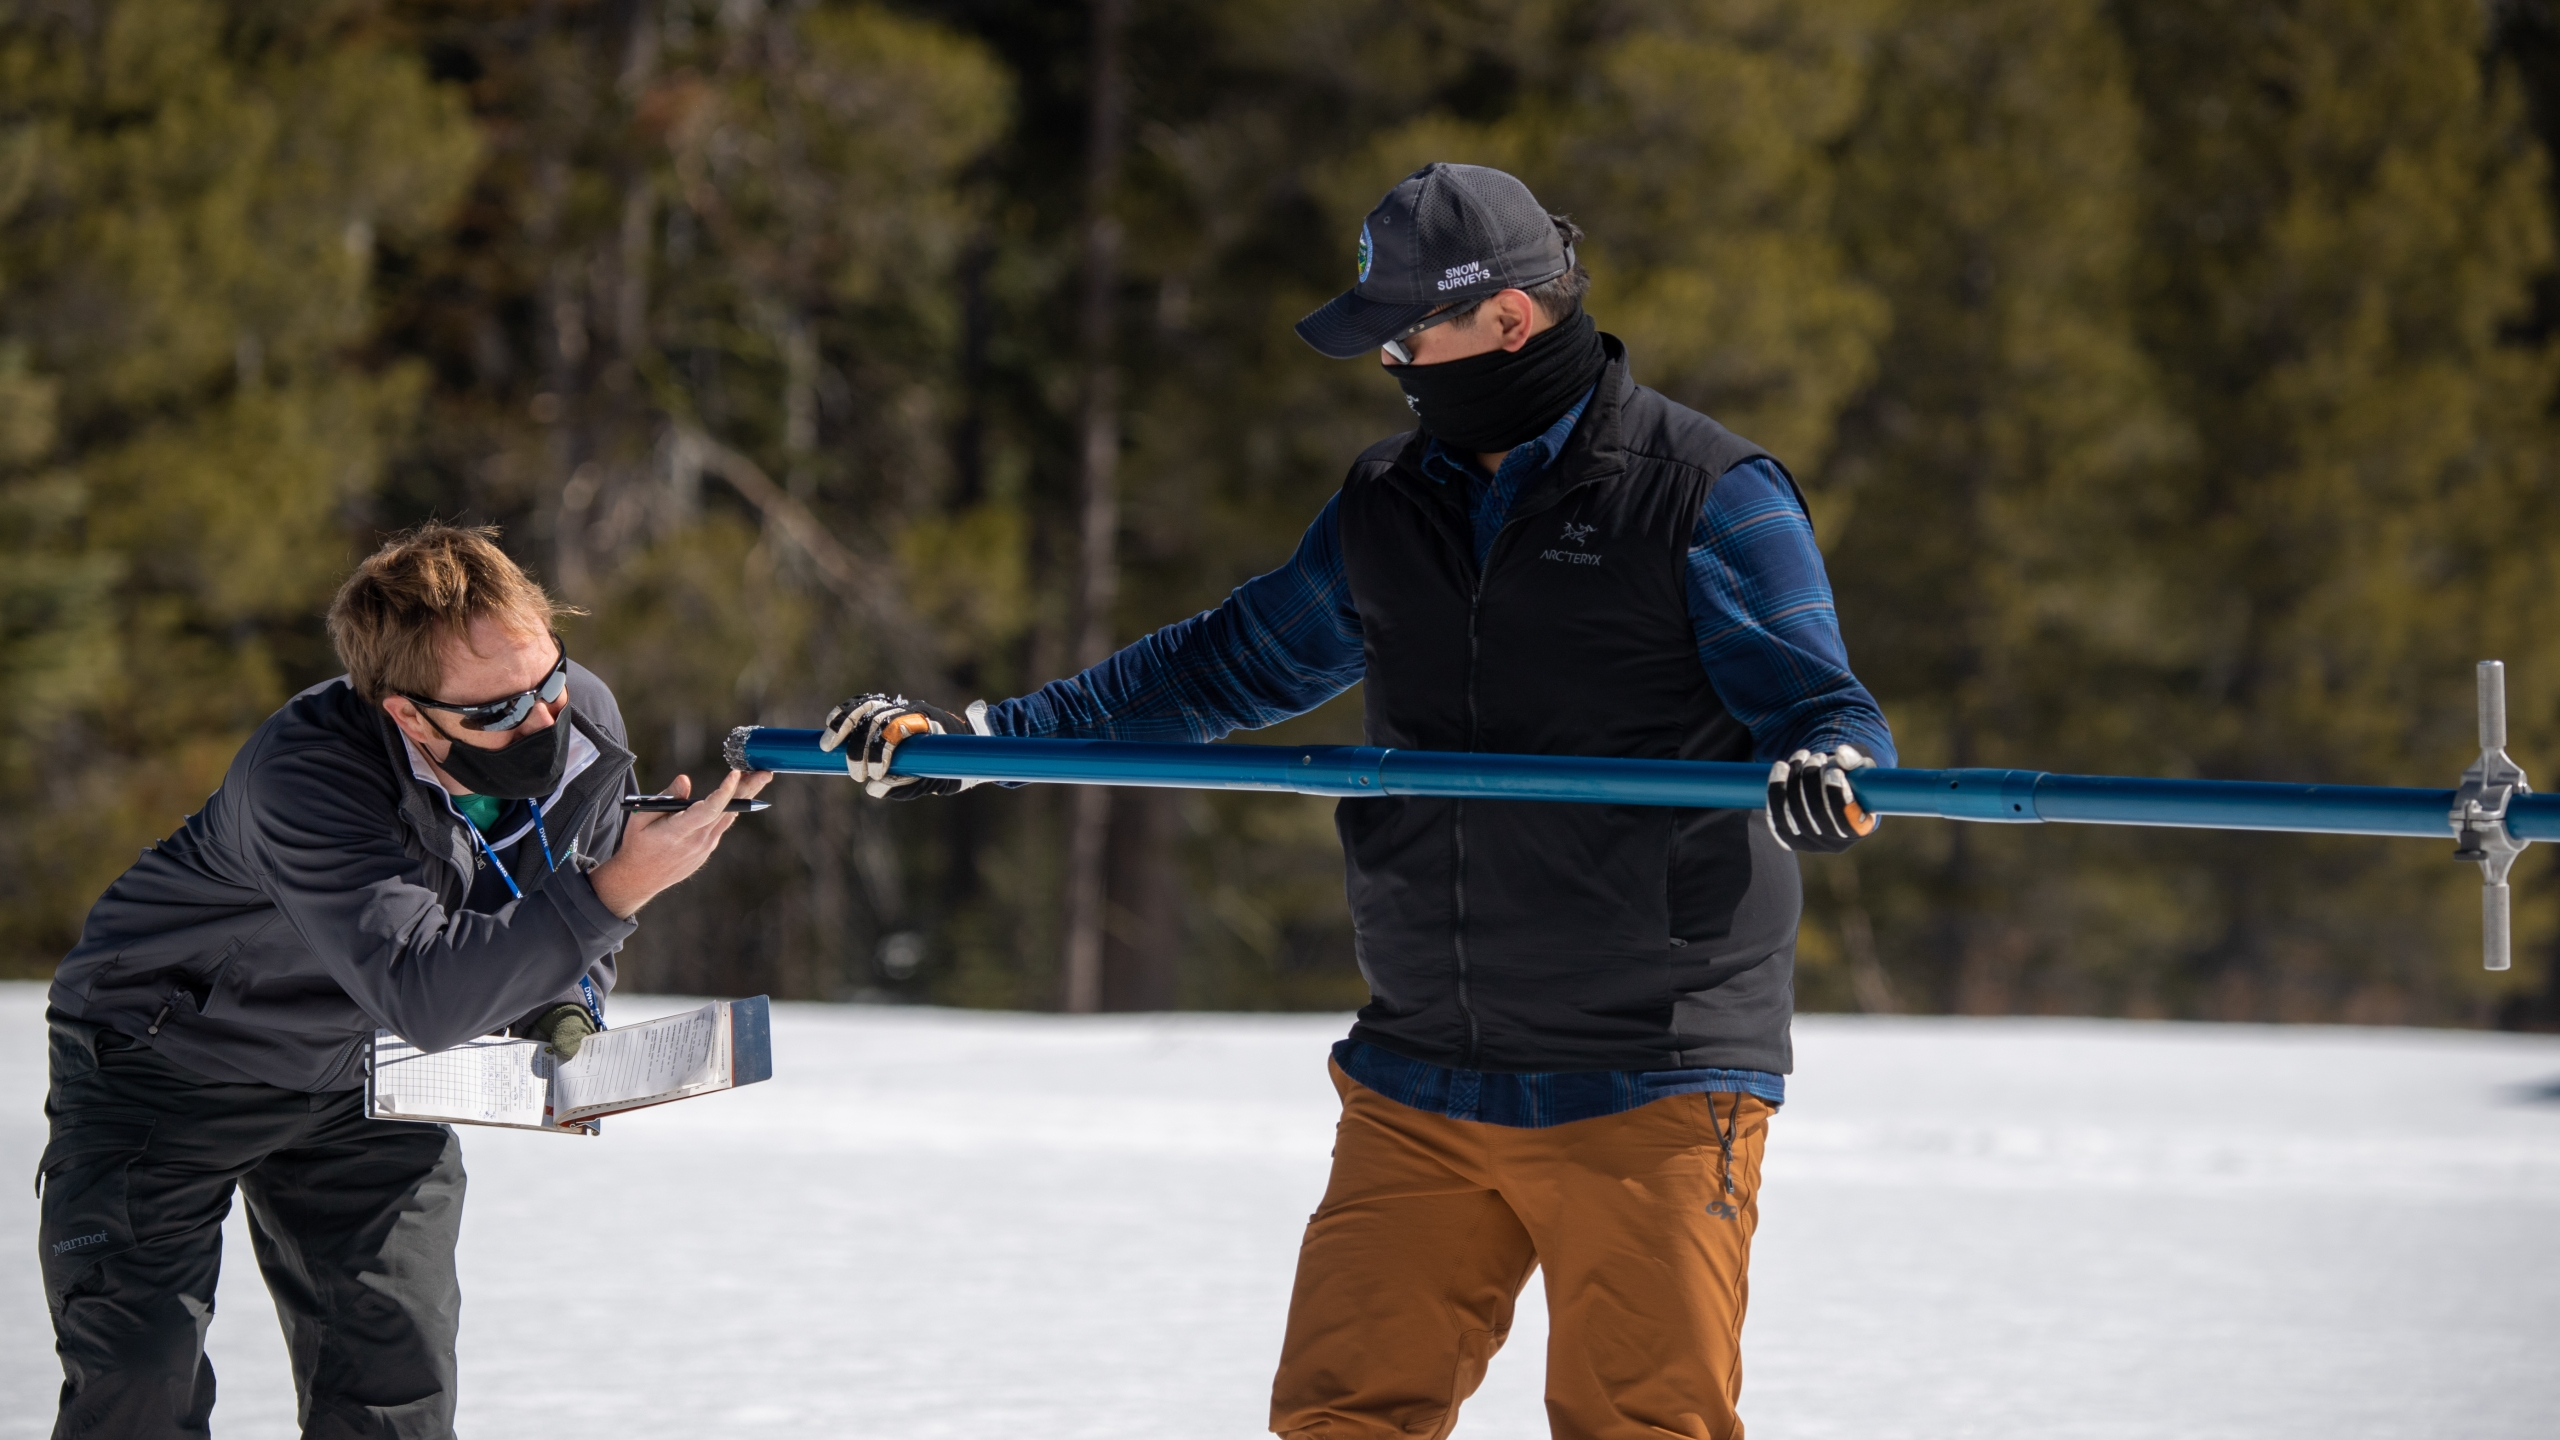 Anthony Burdock (left), Water Resources Engineer, Snow Surveys and Water Supply Forecasting Section, California Department of Water Resources, and Sean de Guzman, DWR Chief of the Snow Survey and Water Supply Forecast Section, conduct a 2021 snow survey season event at Phillips Station in the Sierra Nevada Mountains on April 1, 2021. The survey is held approximately 90 miles east of Sacramento off Highway 50 in El Dorado County. (Florence Low / California Department of Water Resources)